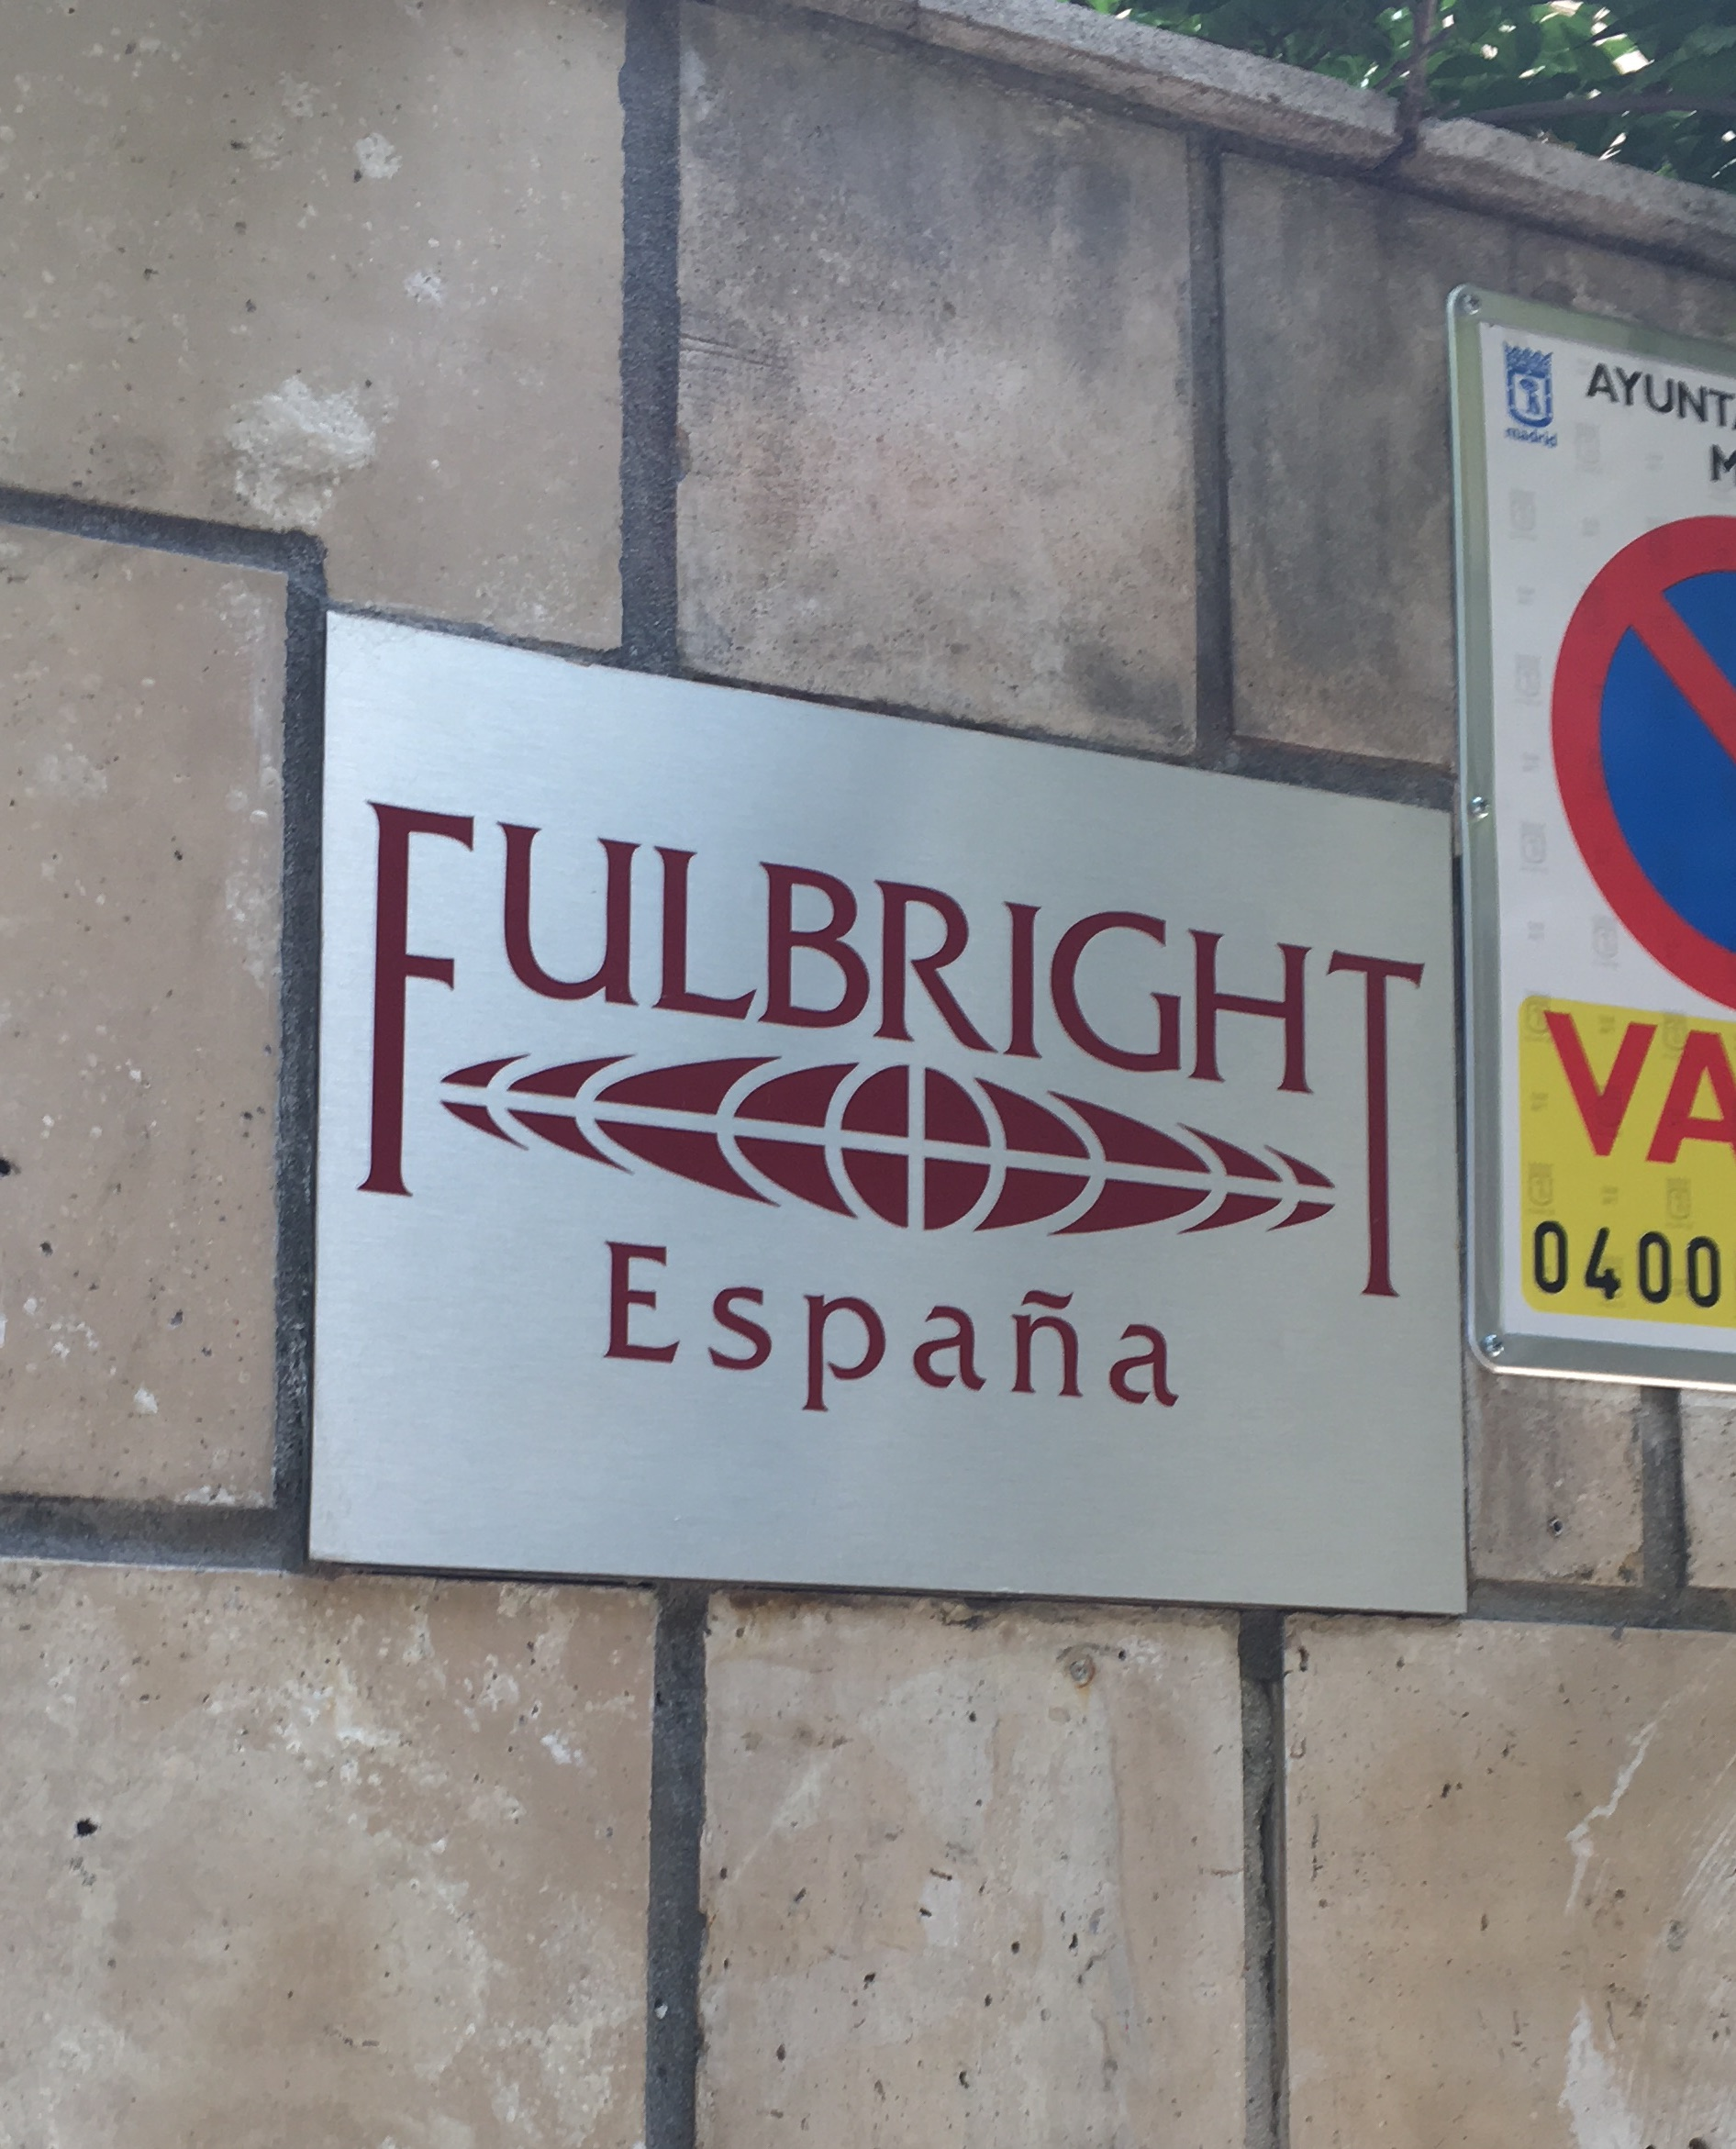 Entrance of the Spanish Fulbright Commission